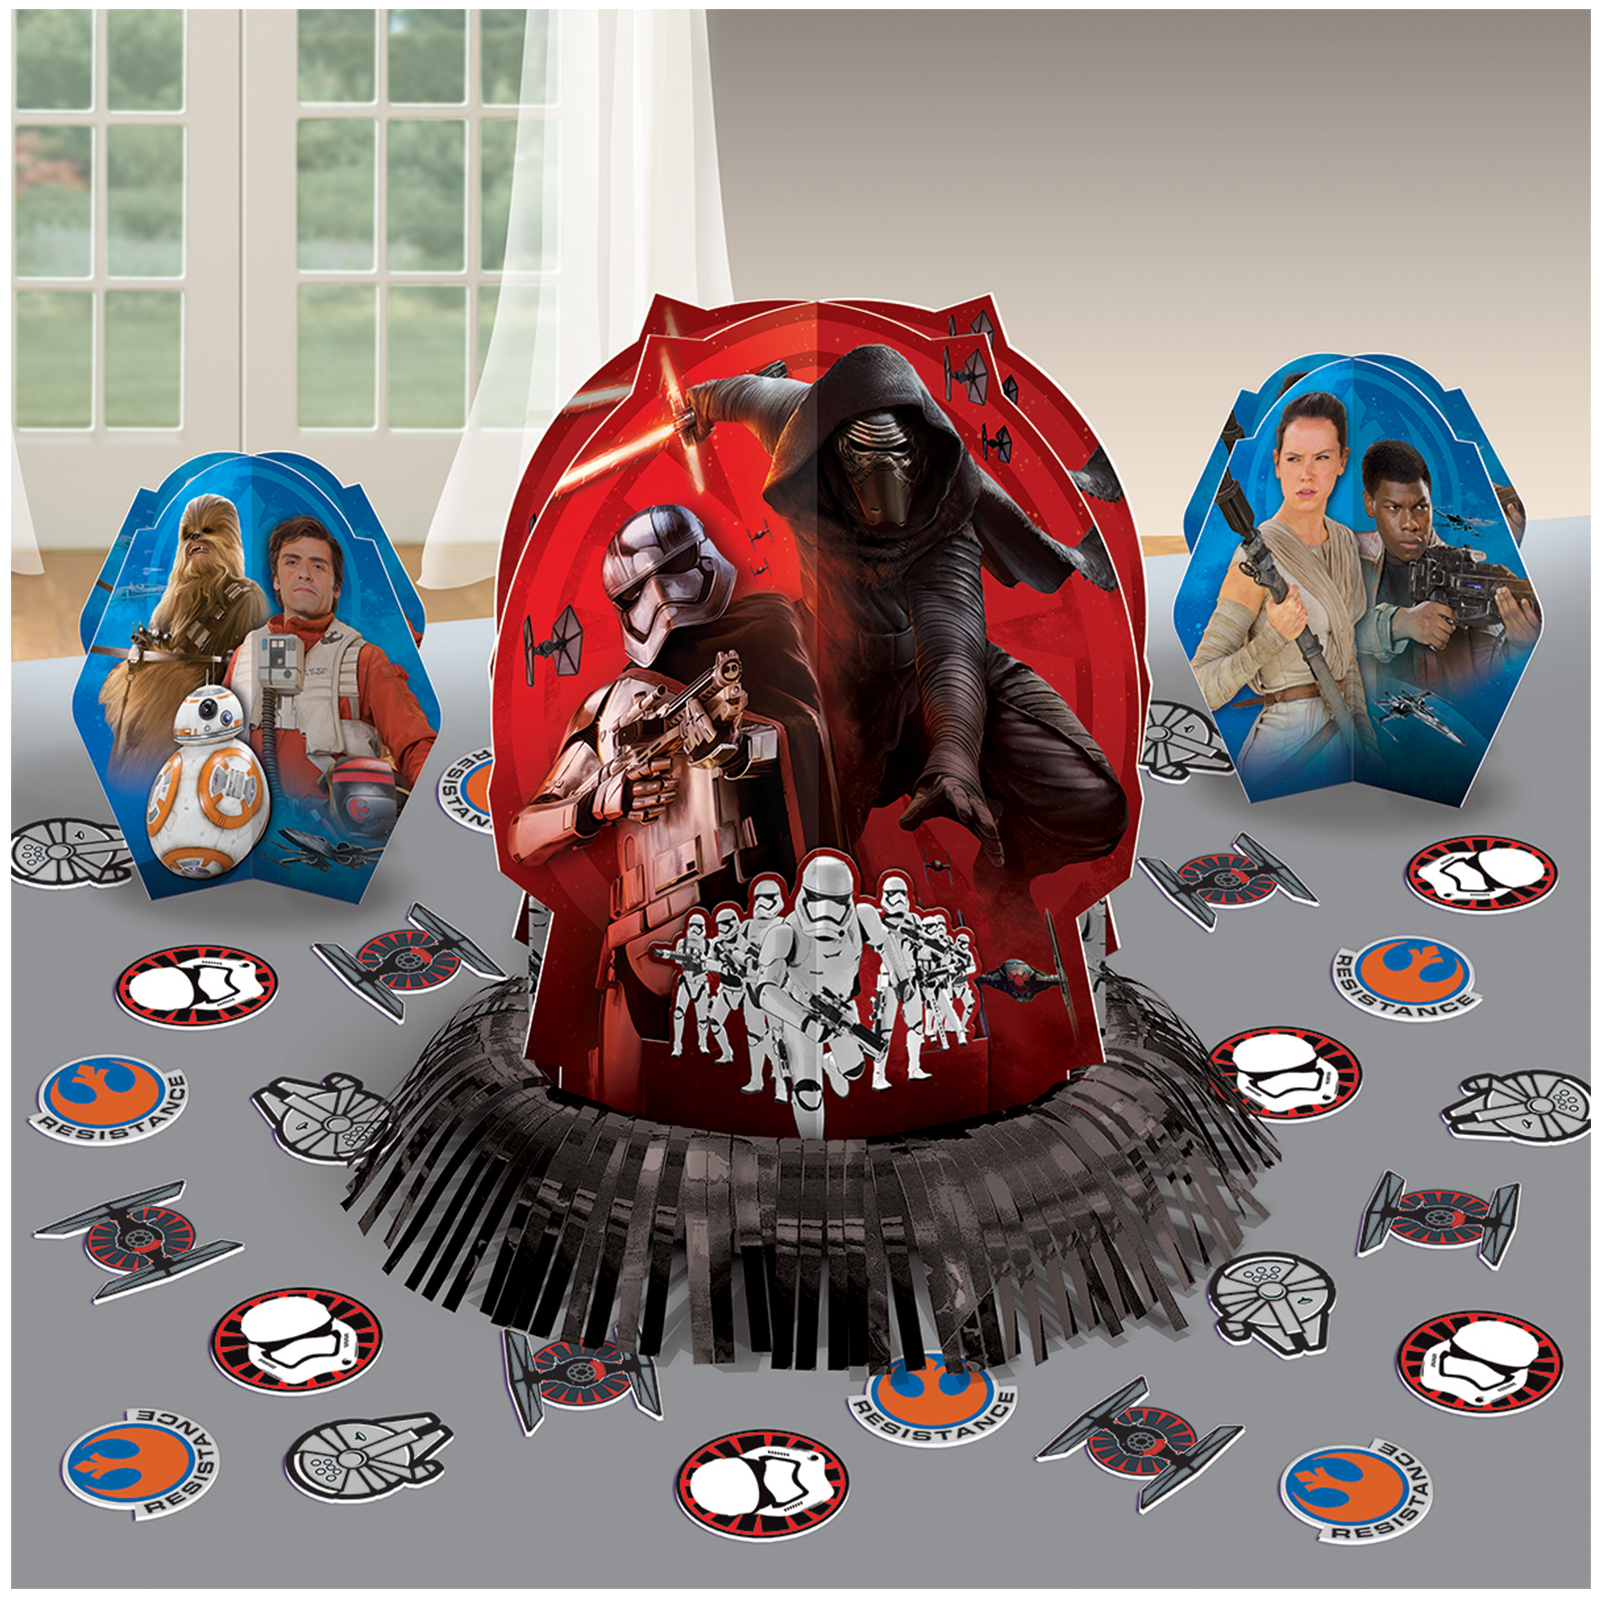 Décoration Table Thème Star Wars Star Wars 7 The Force Awakens Table Decorating Kit